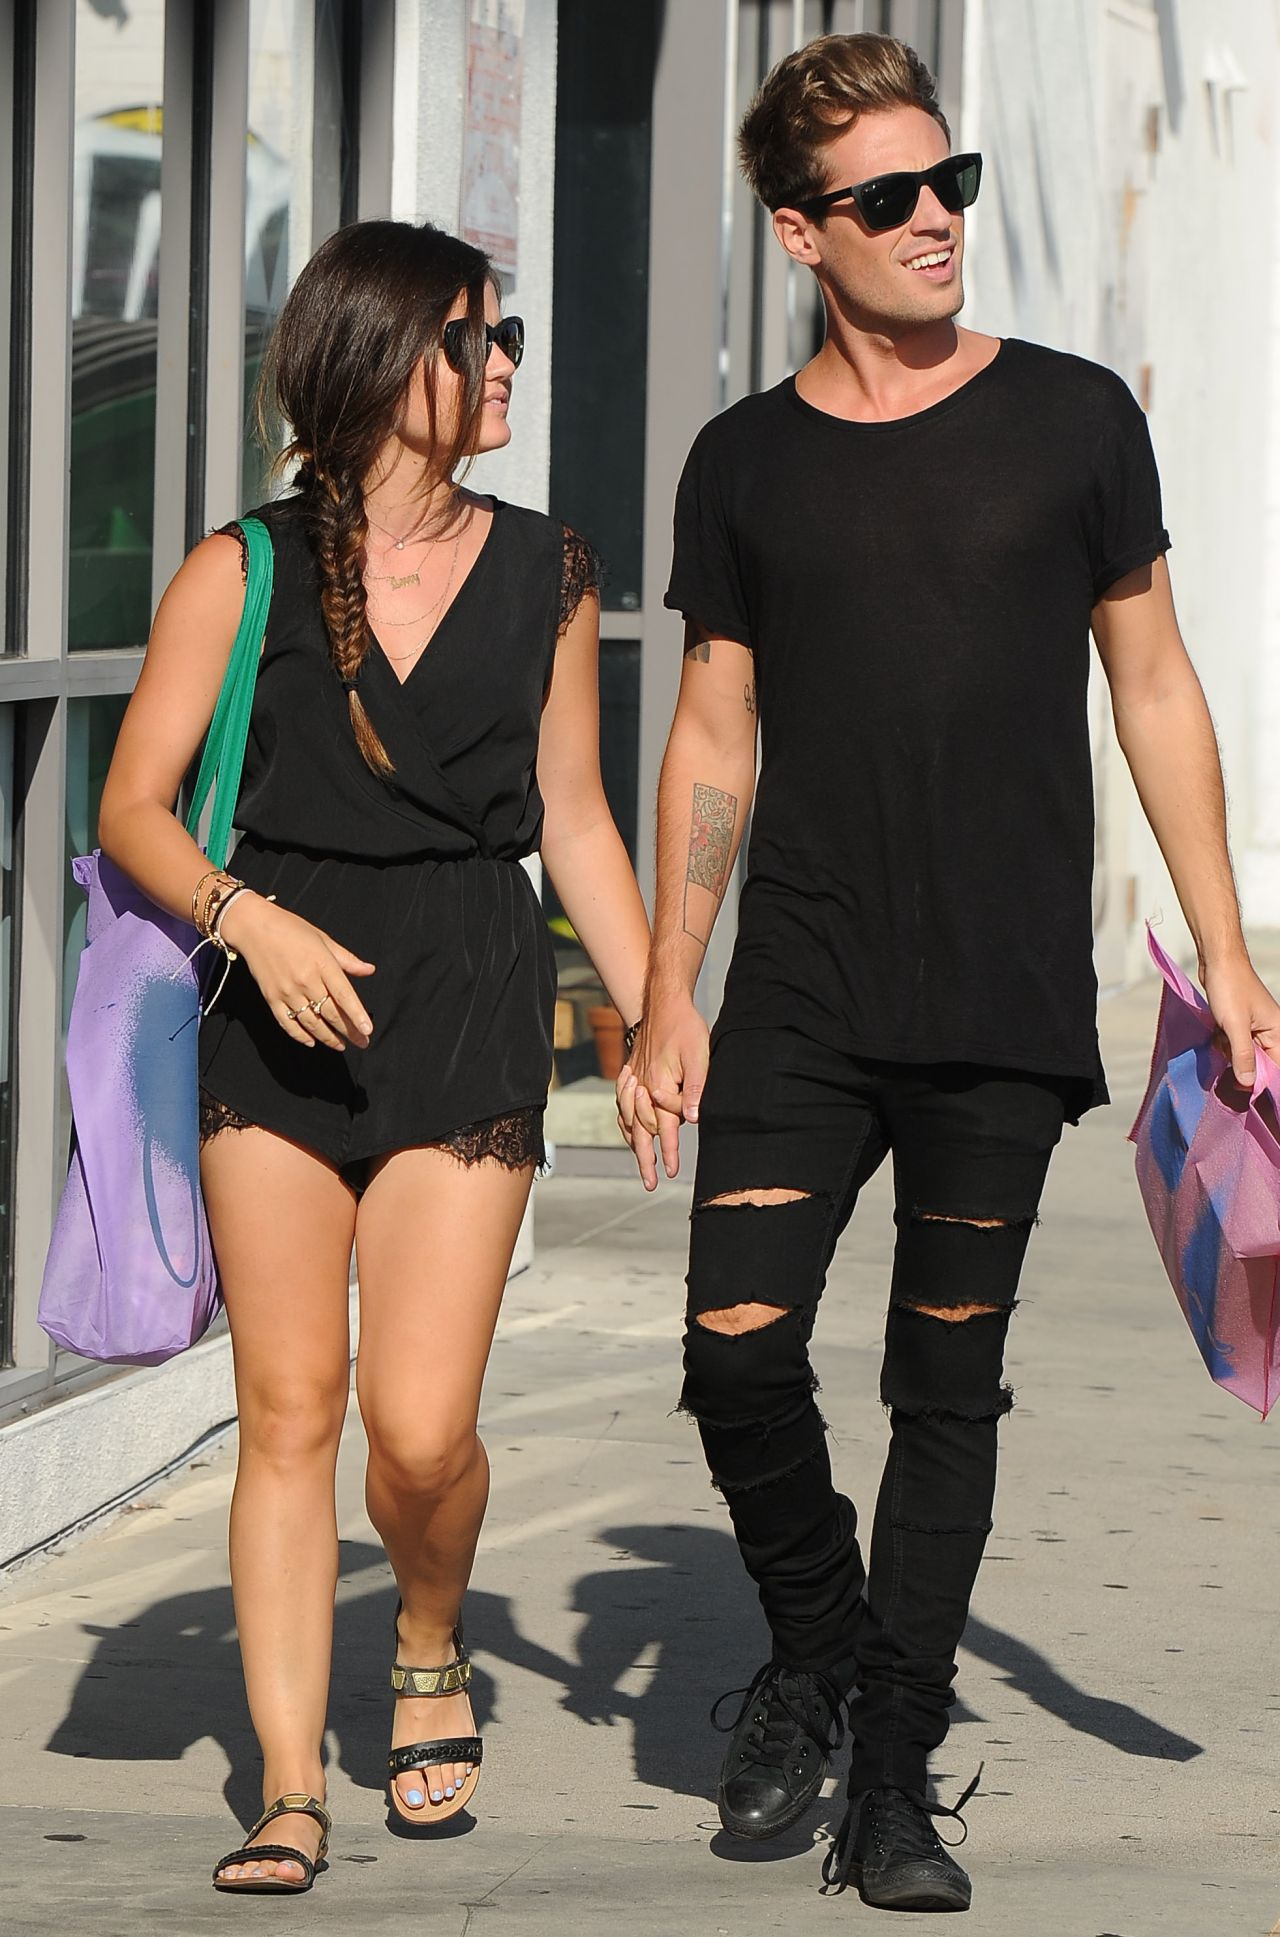 Lucy Hale u0026 Her Boyfriend Shopping in Beverly Hills - September 2014